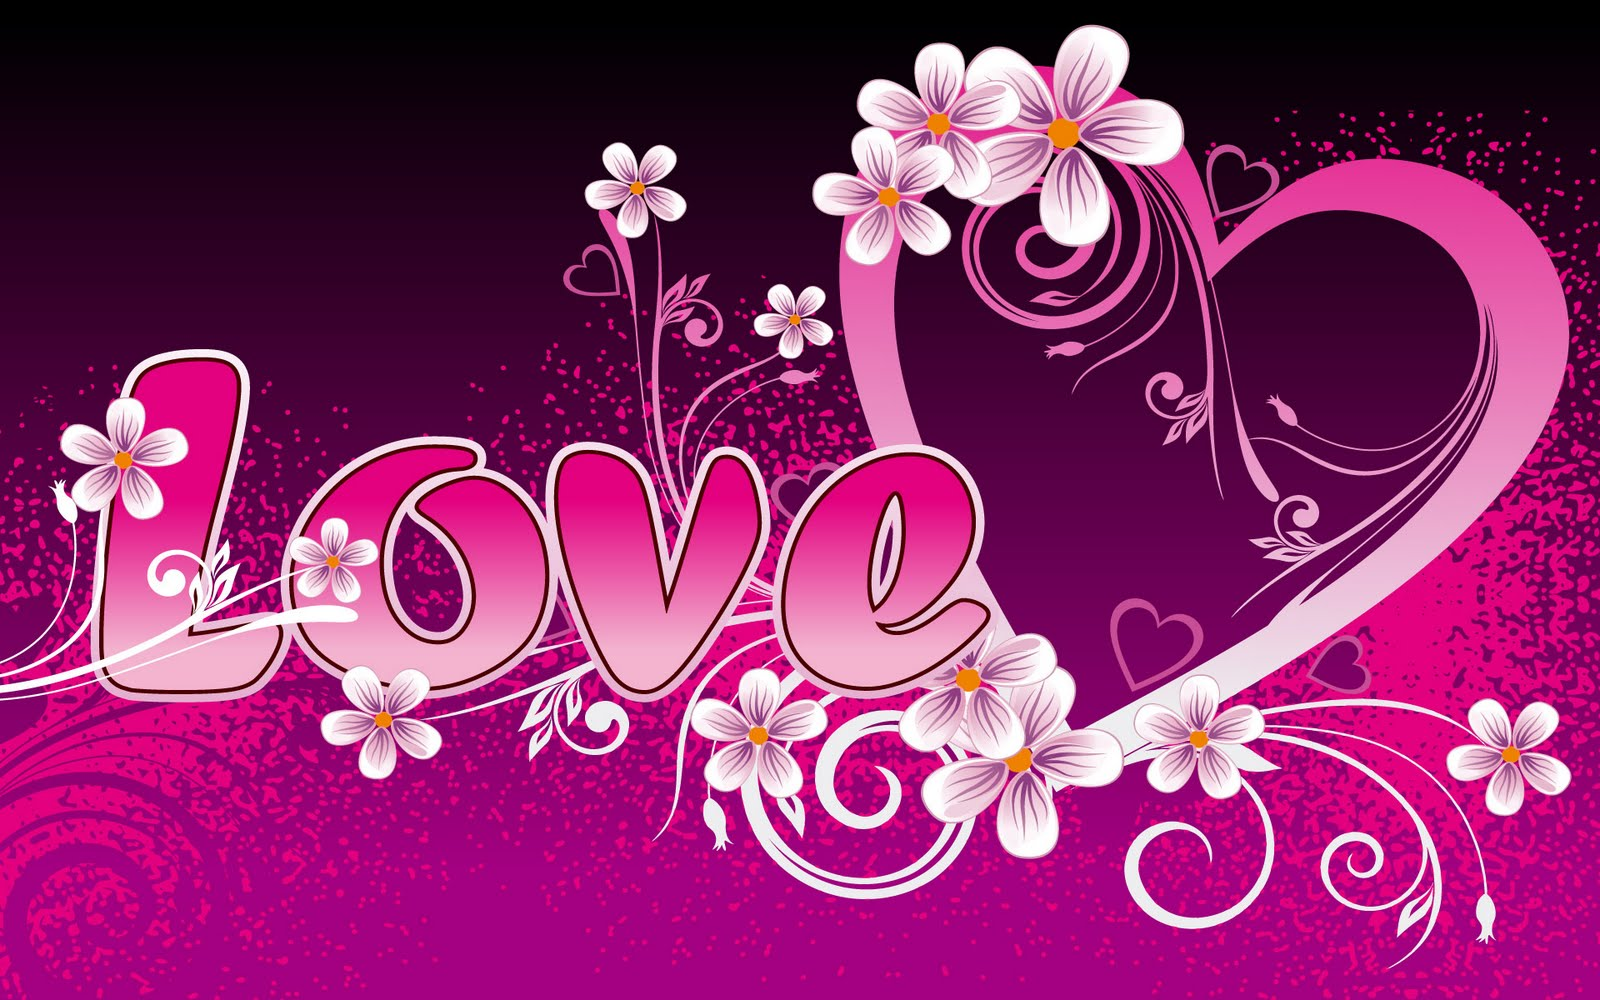 Ilona Wallpapers: Valentines Day Free Wallpapers HD